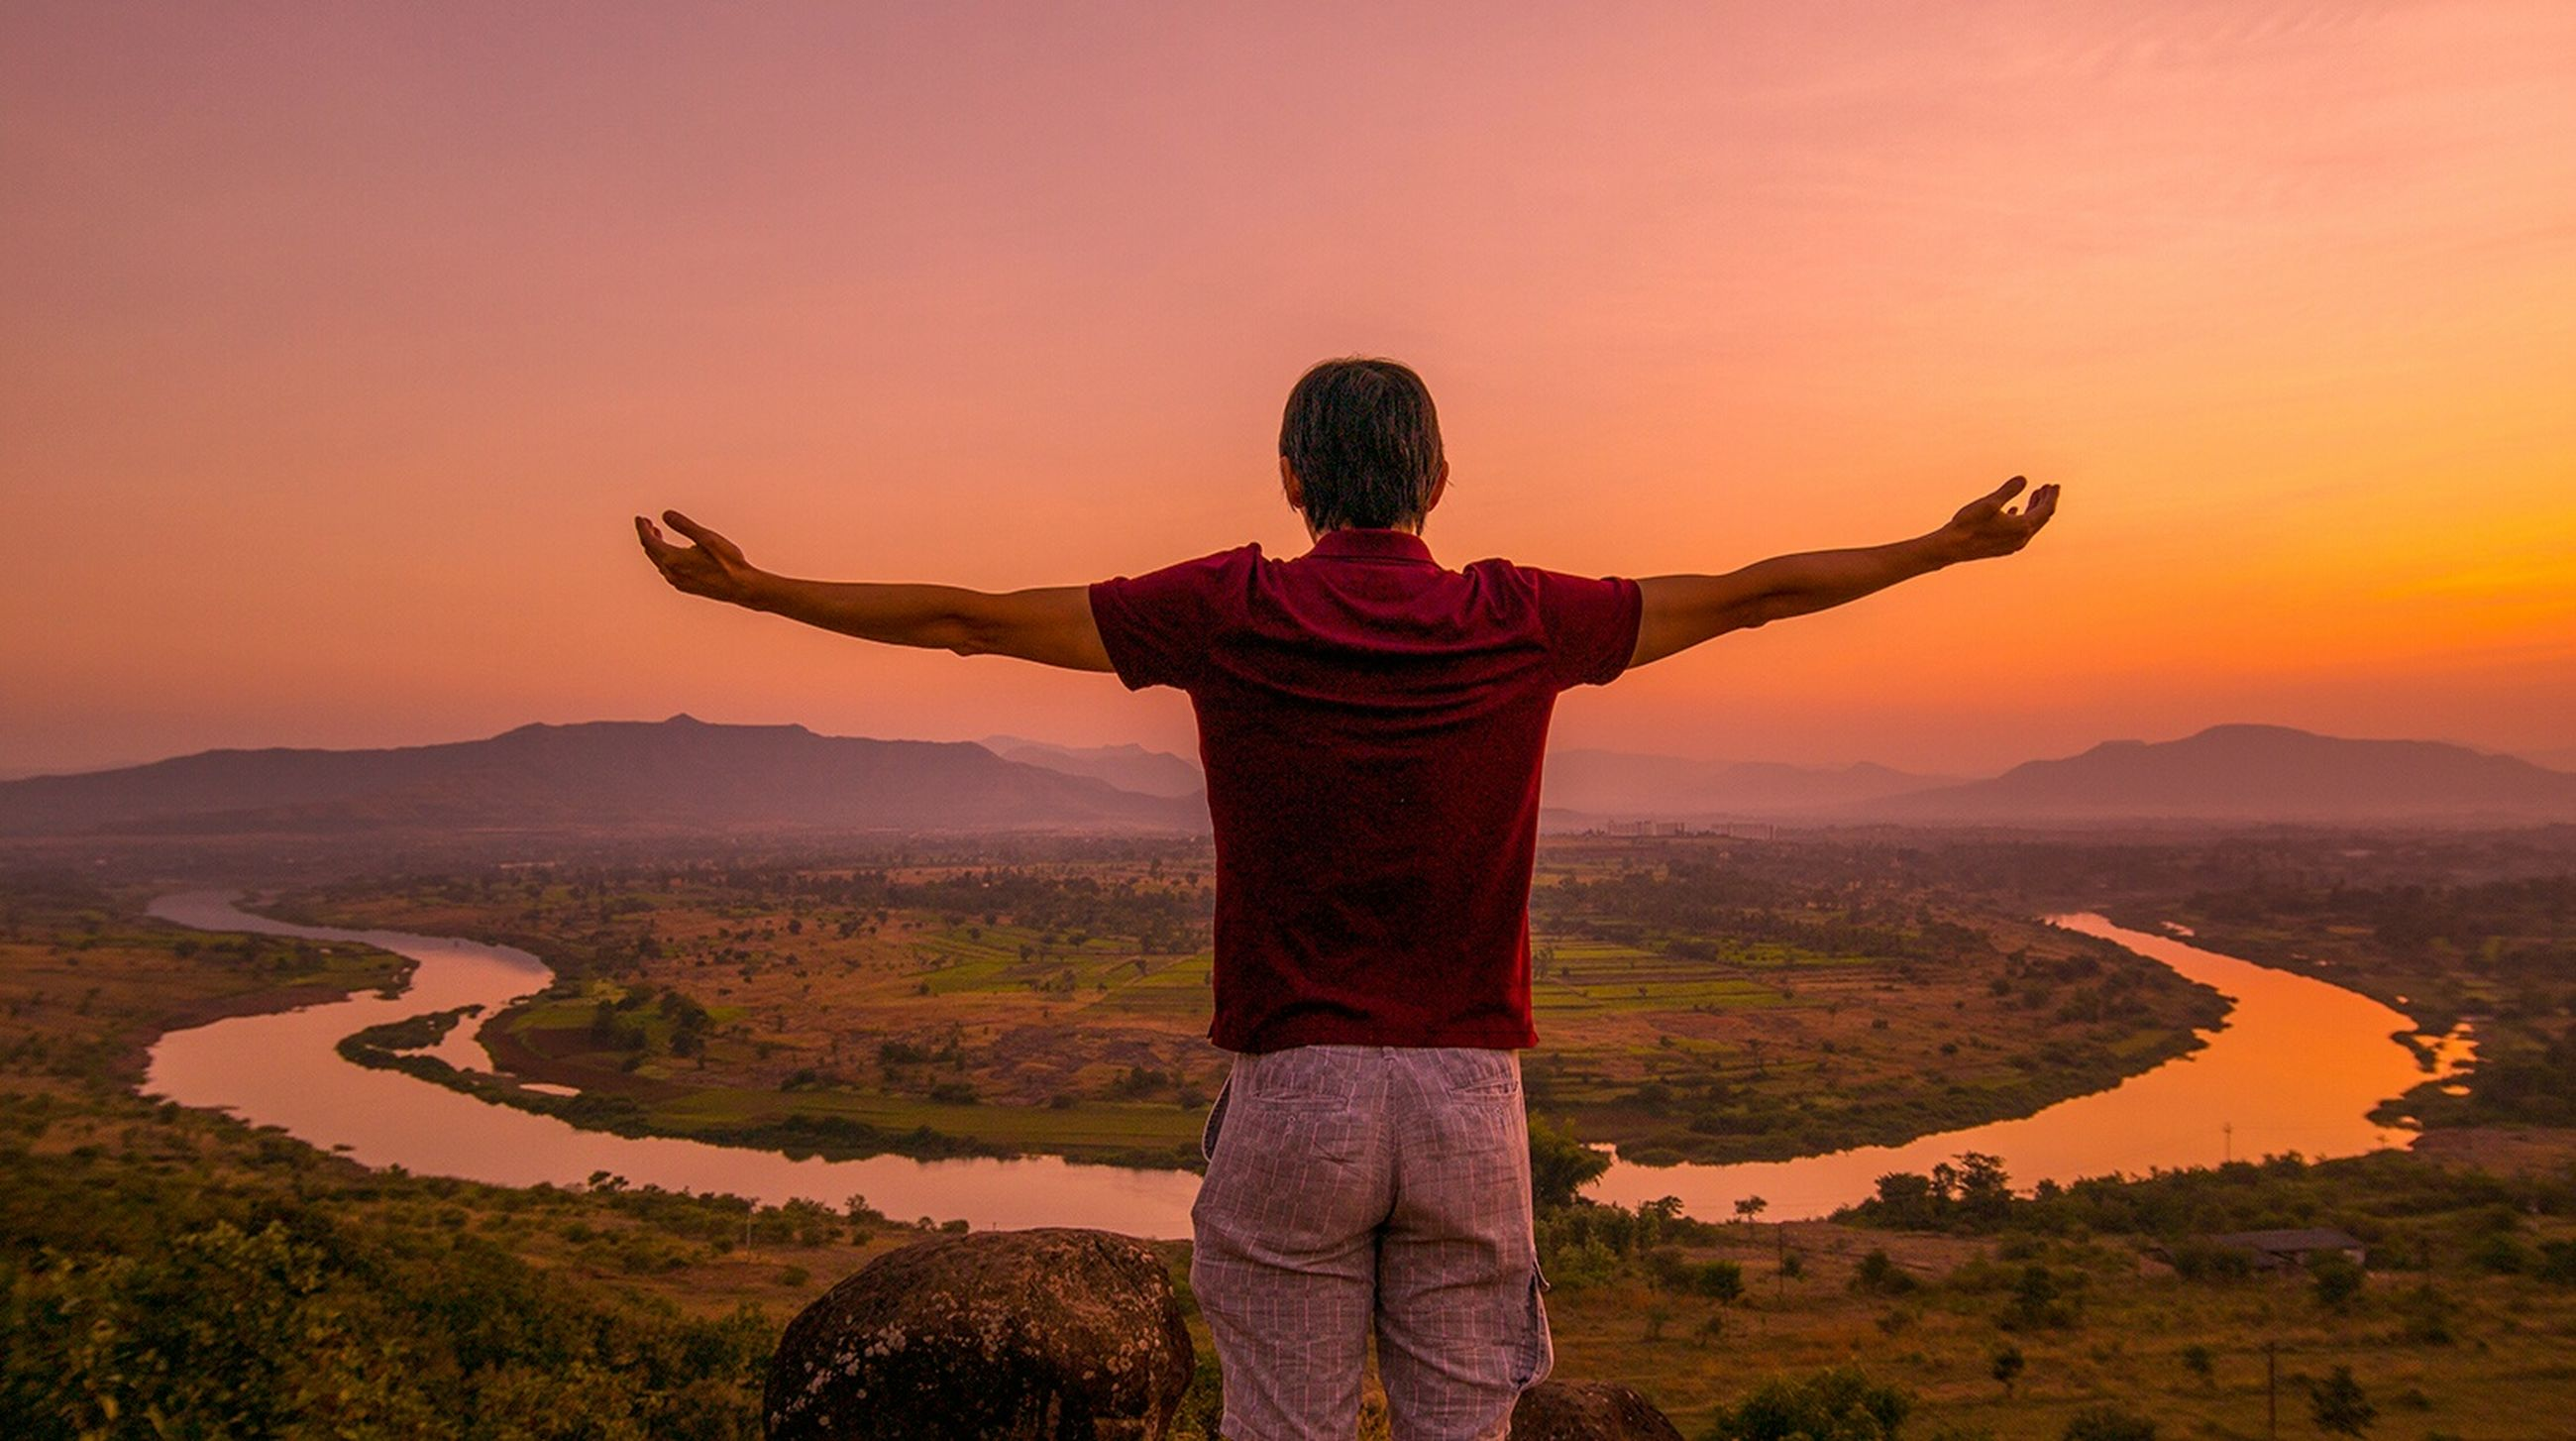 leisure activity, lifestyles, sunset, standing, landscape, casual clothing, sky, full length, three quarter length, mountain, tranquility, tranquil scene, arms outstretched, scenics, field, beauty in nature, nature, orange color